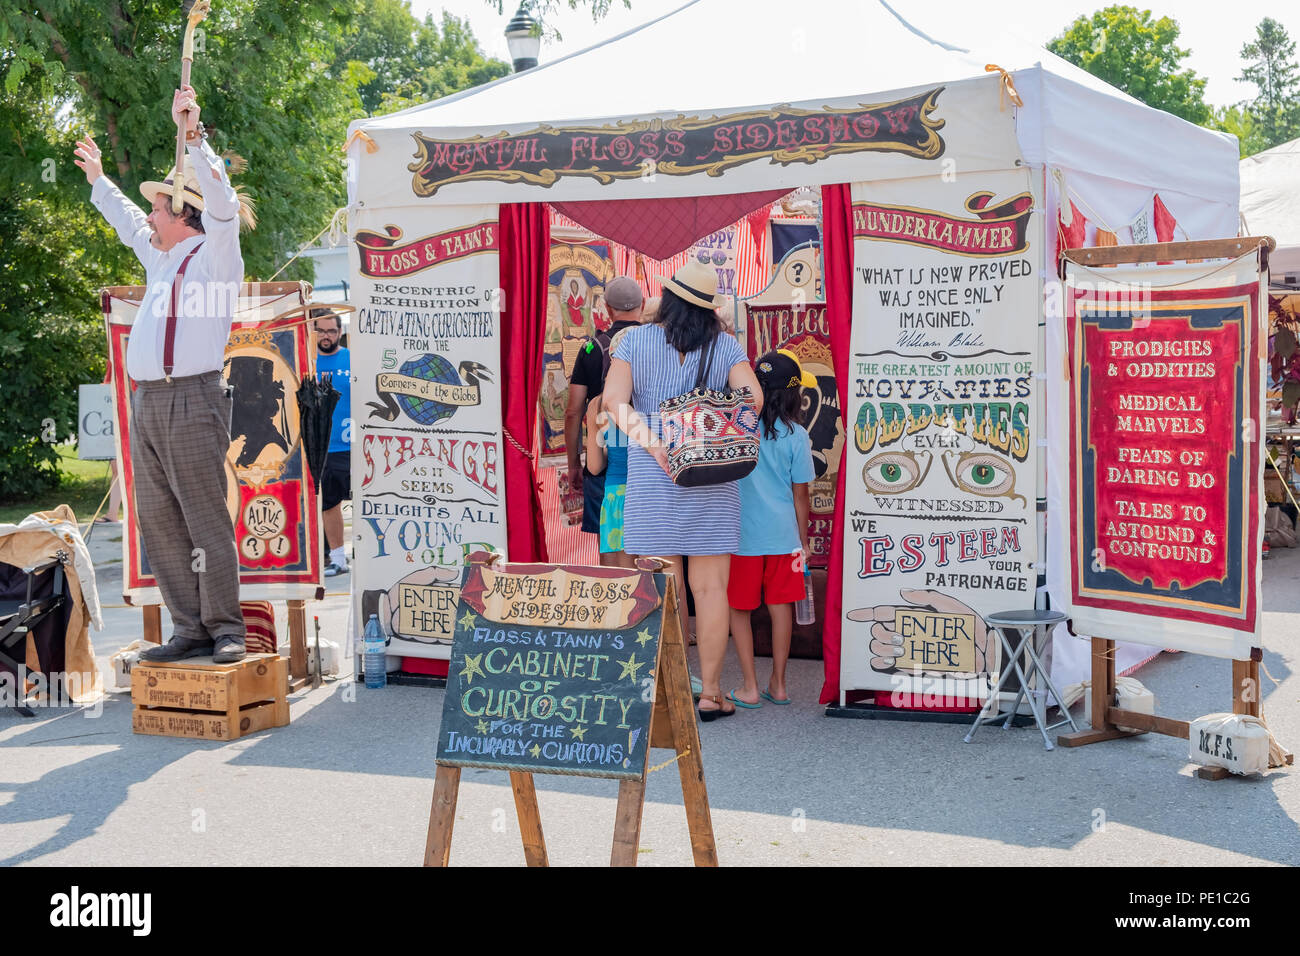 Old time Victorian style side show at the annual Steampunk Festival in Coldwater Ontario. - Stock Image